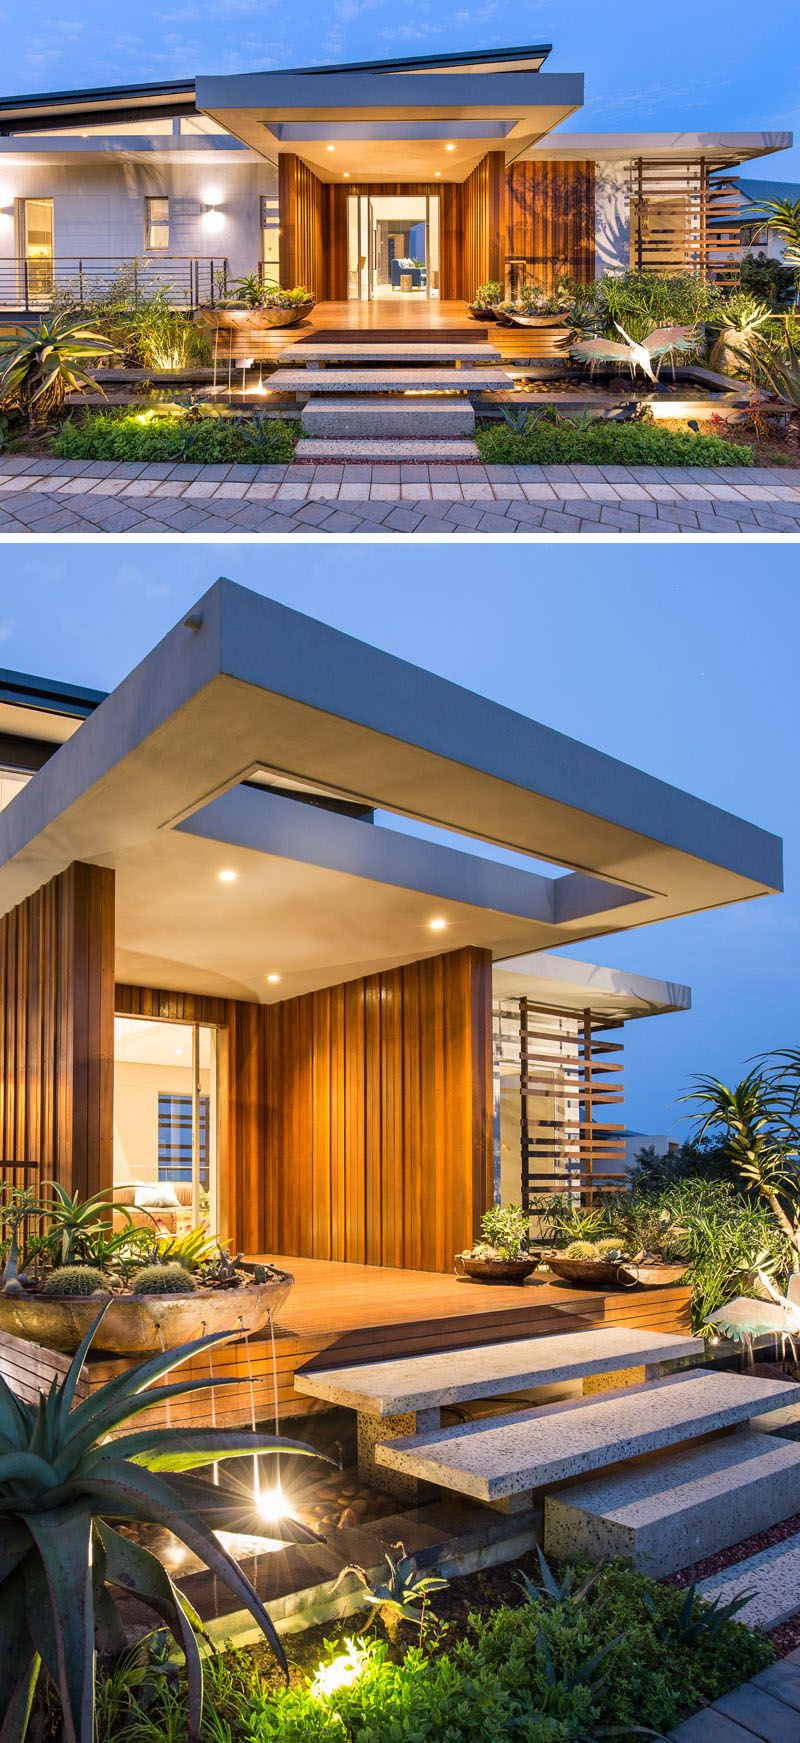 This House In South Africa Was Designed Around An Indoor Swimming Pool